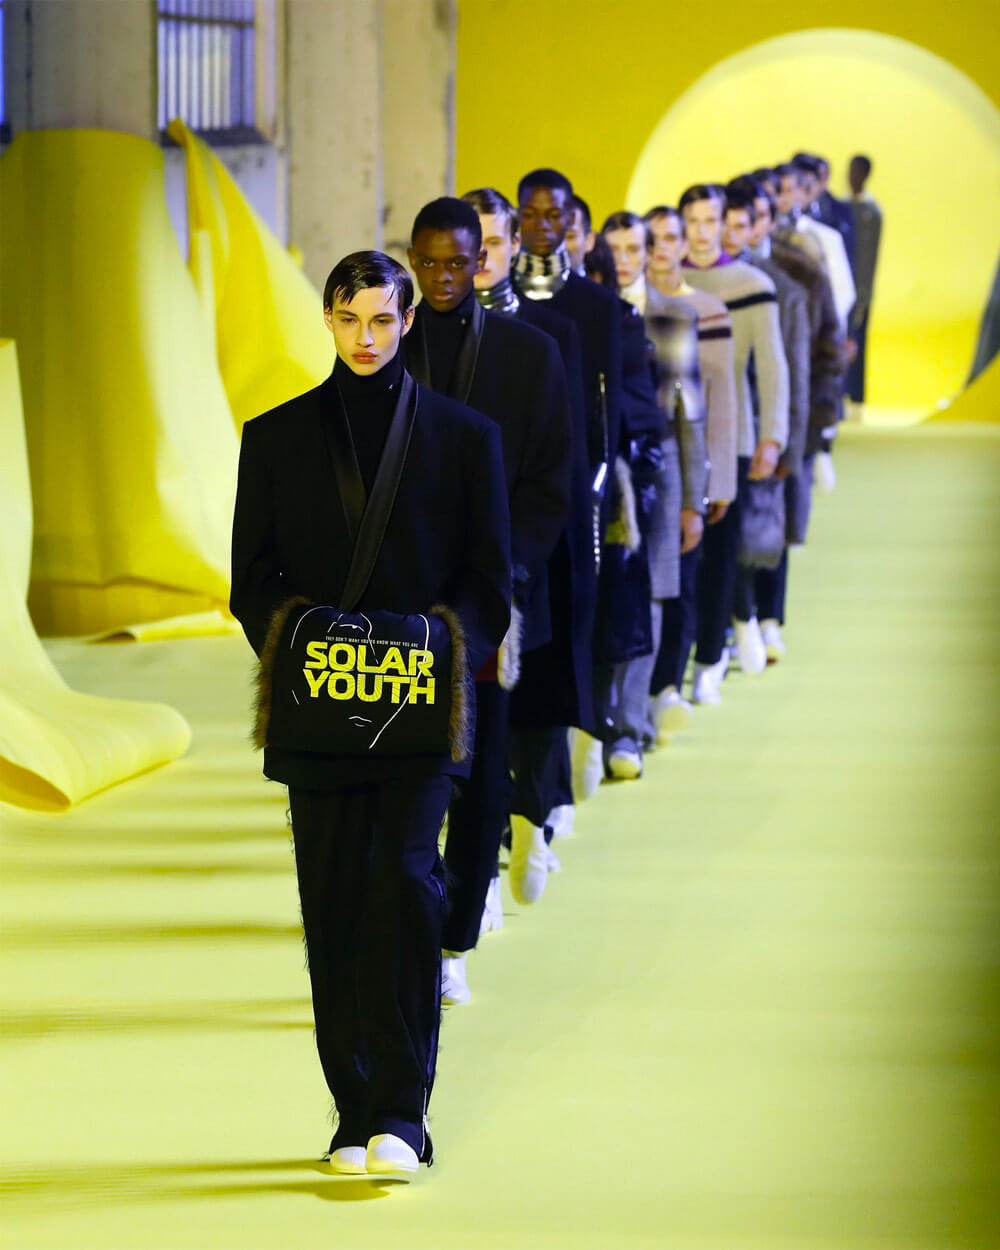 Prada 2020 collection by Raf Simons